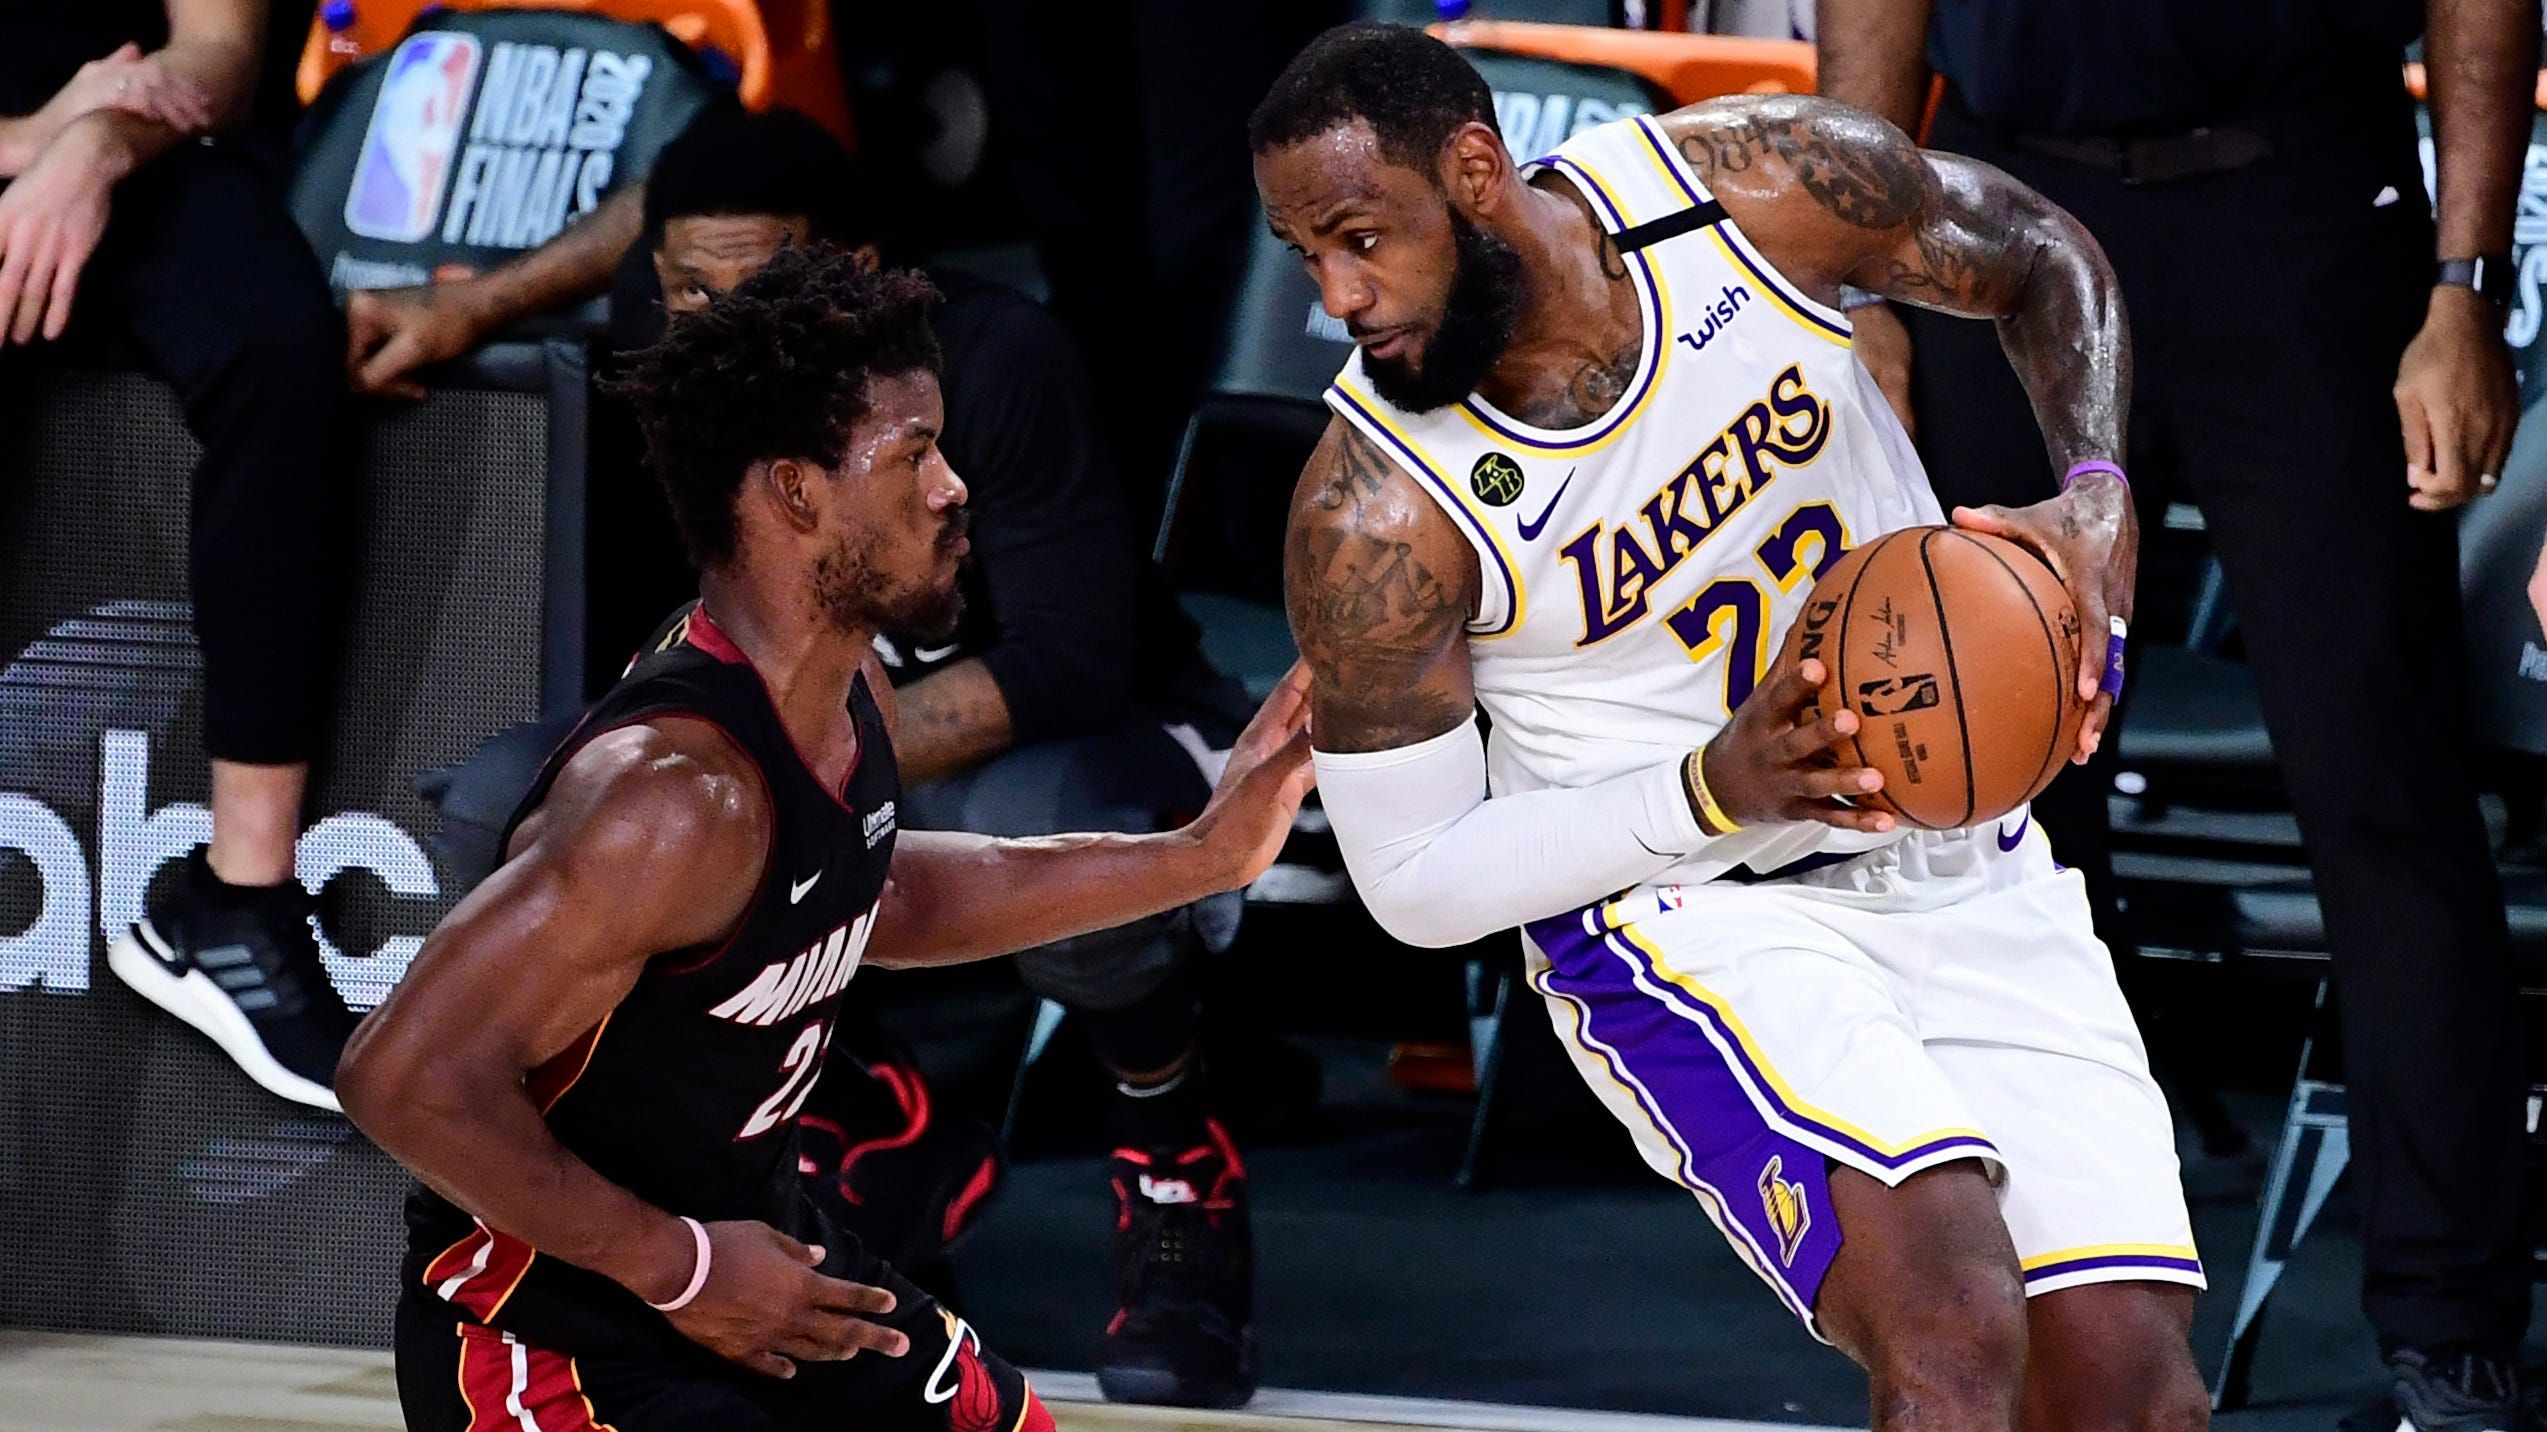 Sports Lakers Vs Heat Three Keys To Watch In Game 6 Of The Nba Finals The Stage Was Set For A Los Angeles Lakers Title Coronati In 2020 Nba Finals Lakers Vs Lakers